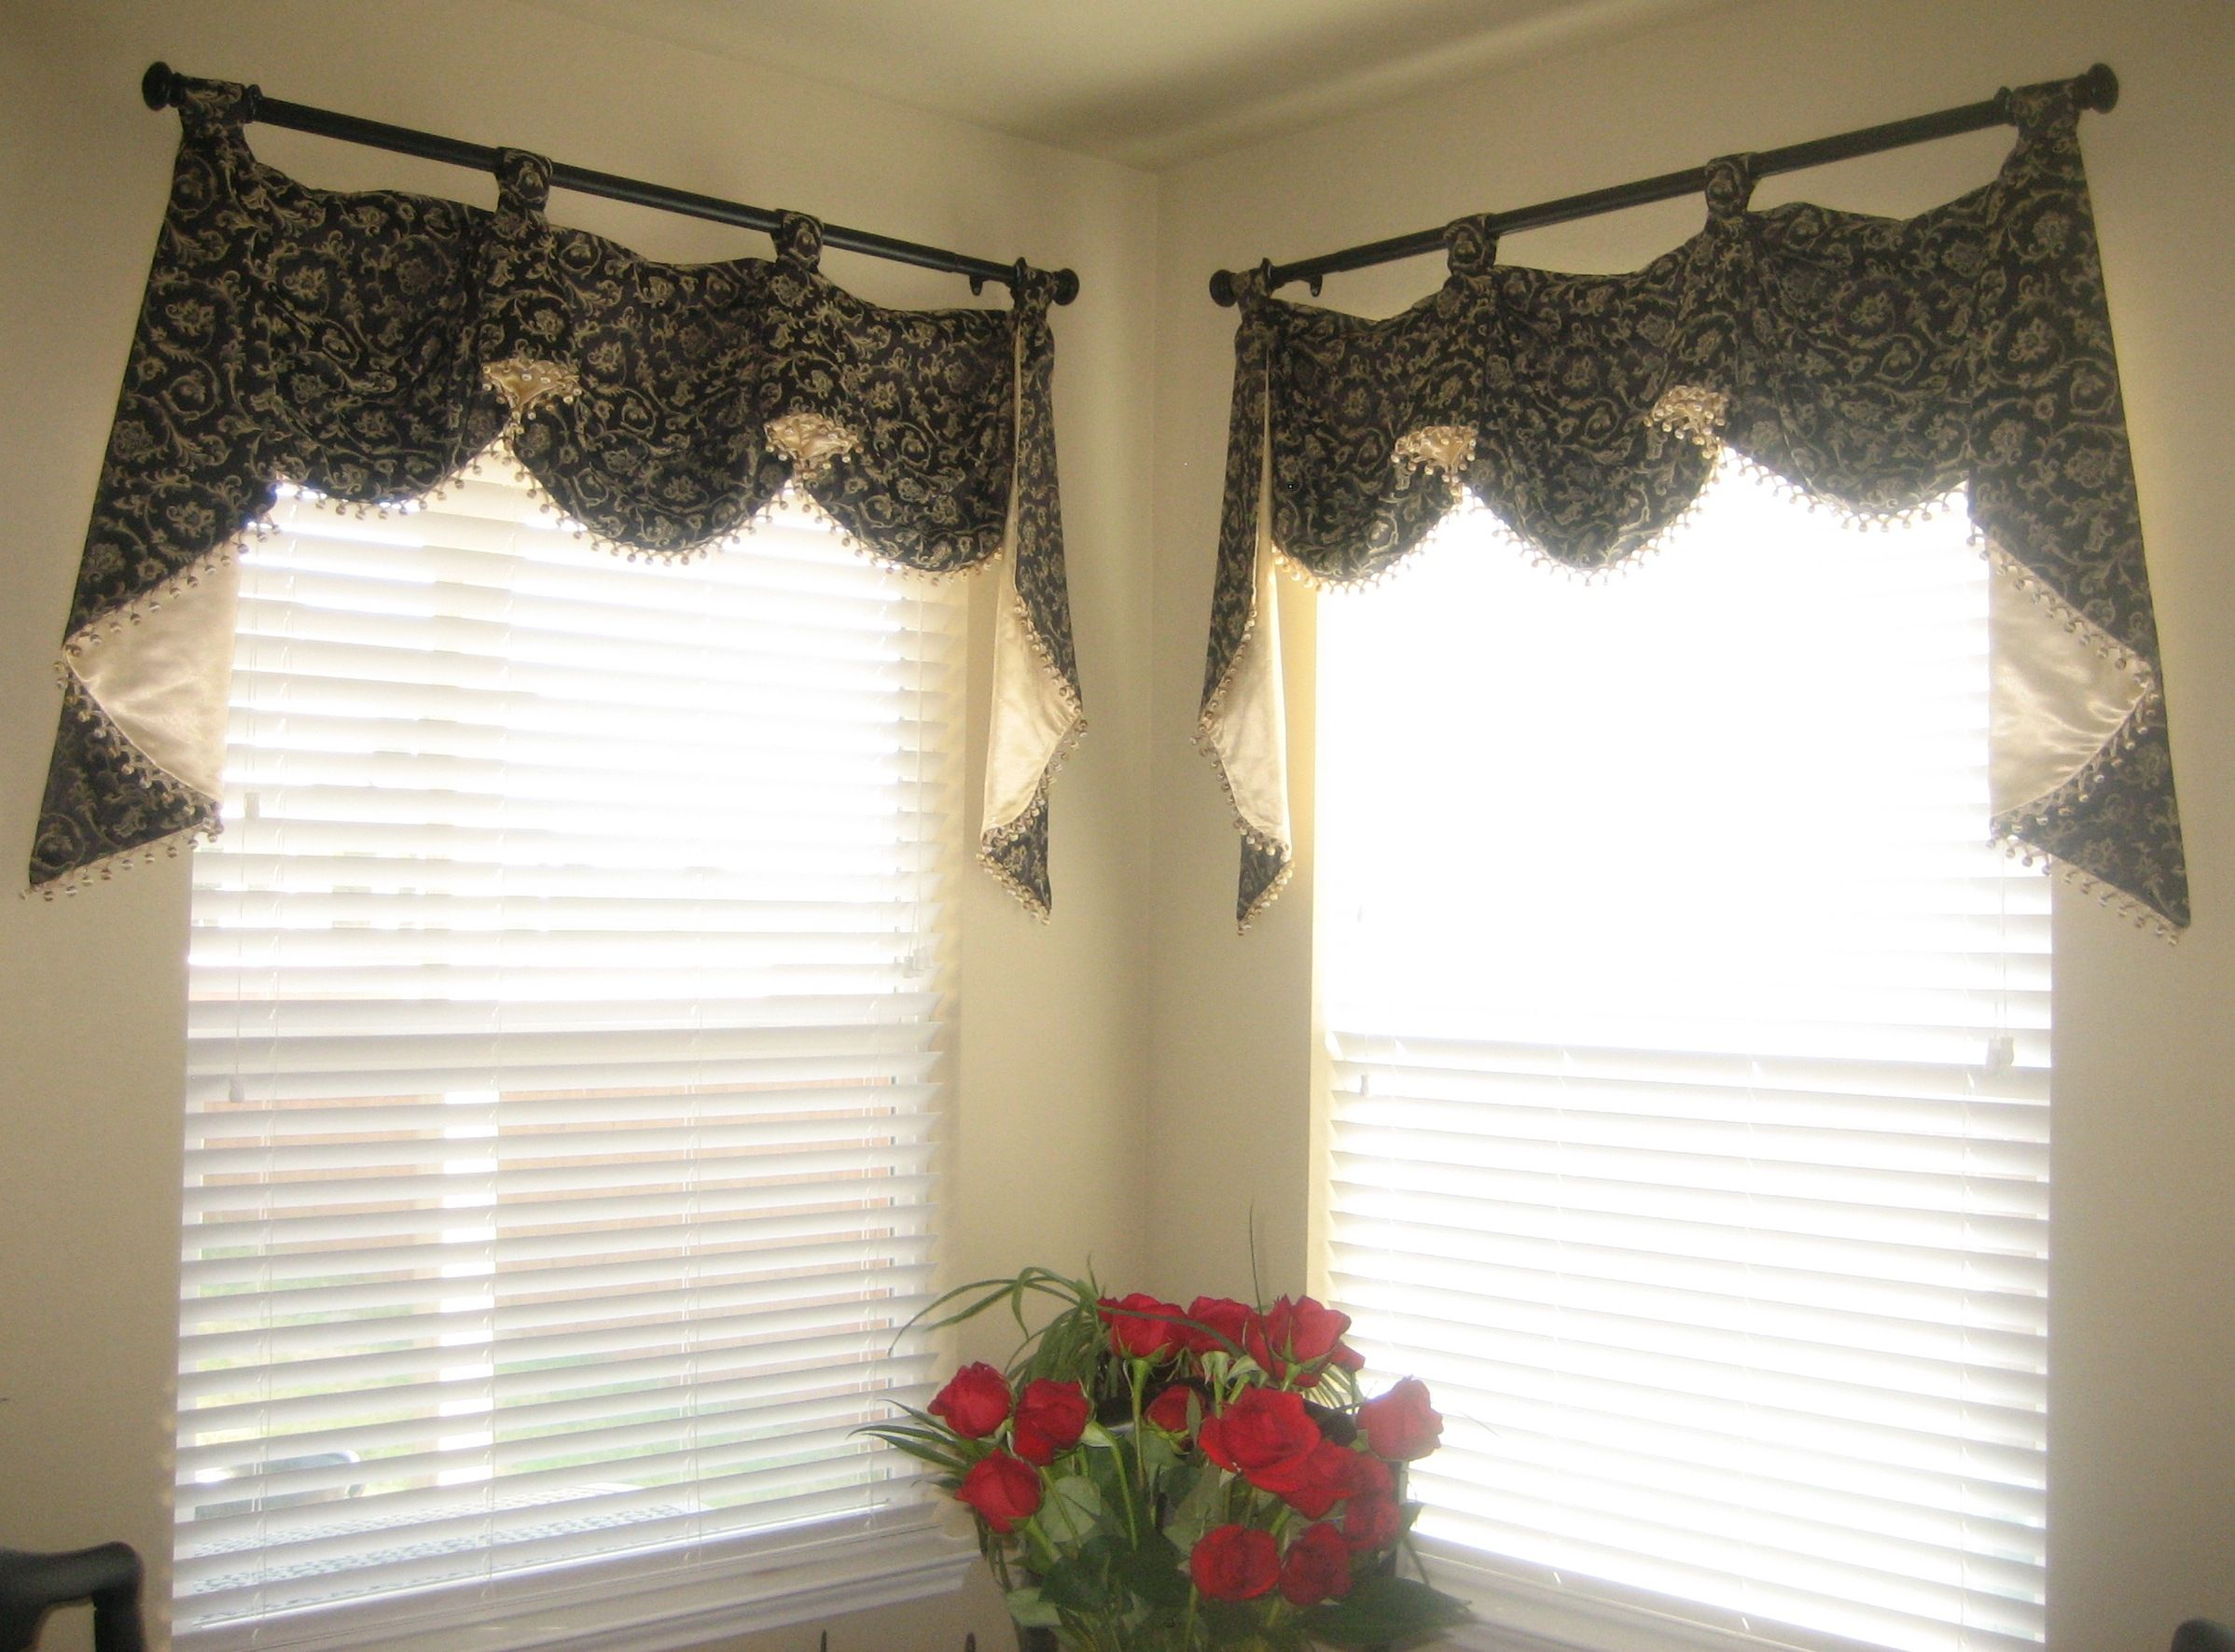 These Pole Mounted Kingston Swag Valances Are Lined In A